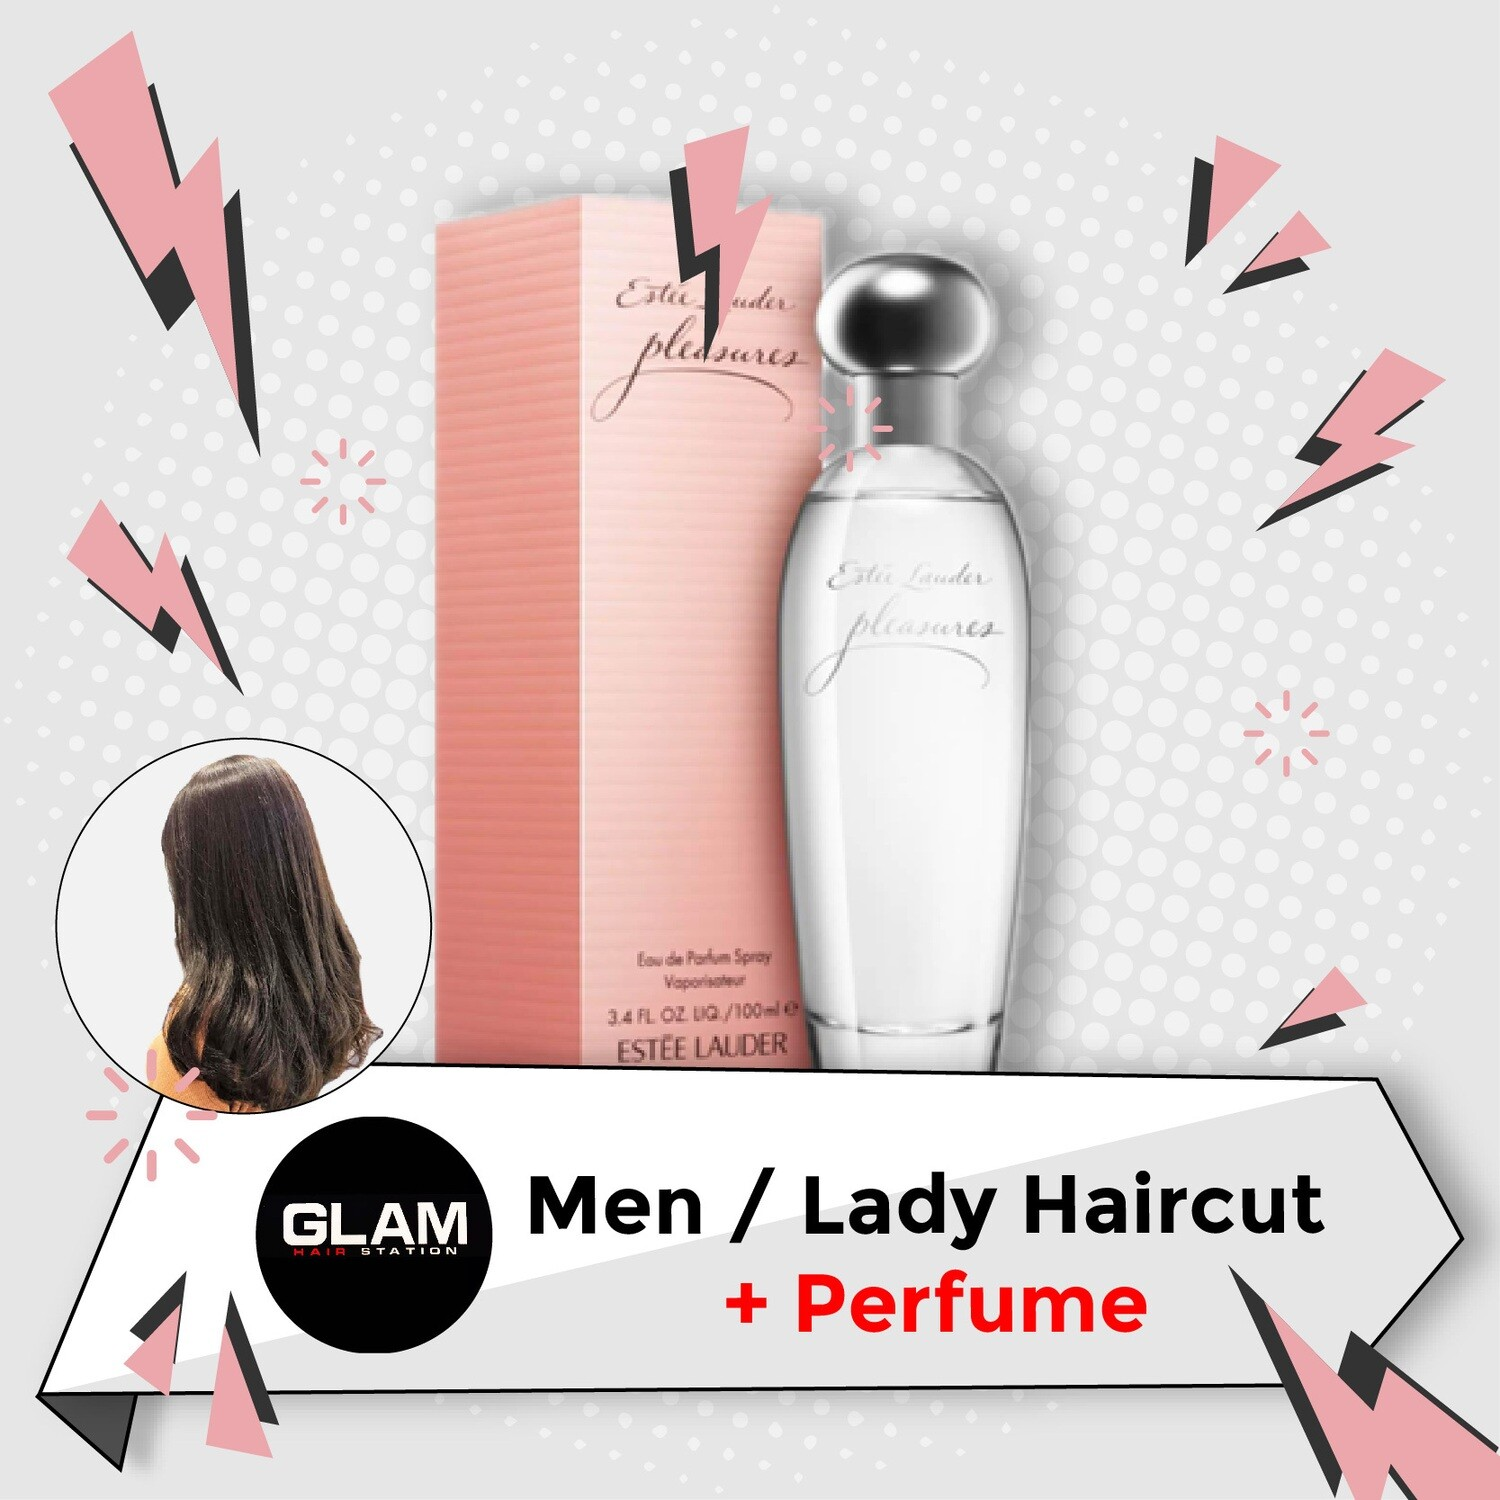 Glam Hair Station Hair Cut Service + Perfume (Estee Lauder Pleasure EDP Lady 100ml) Package